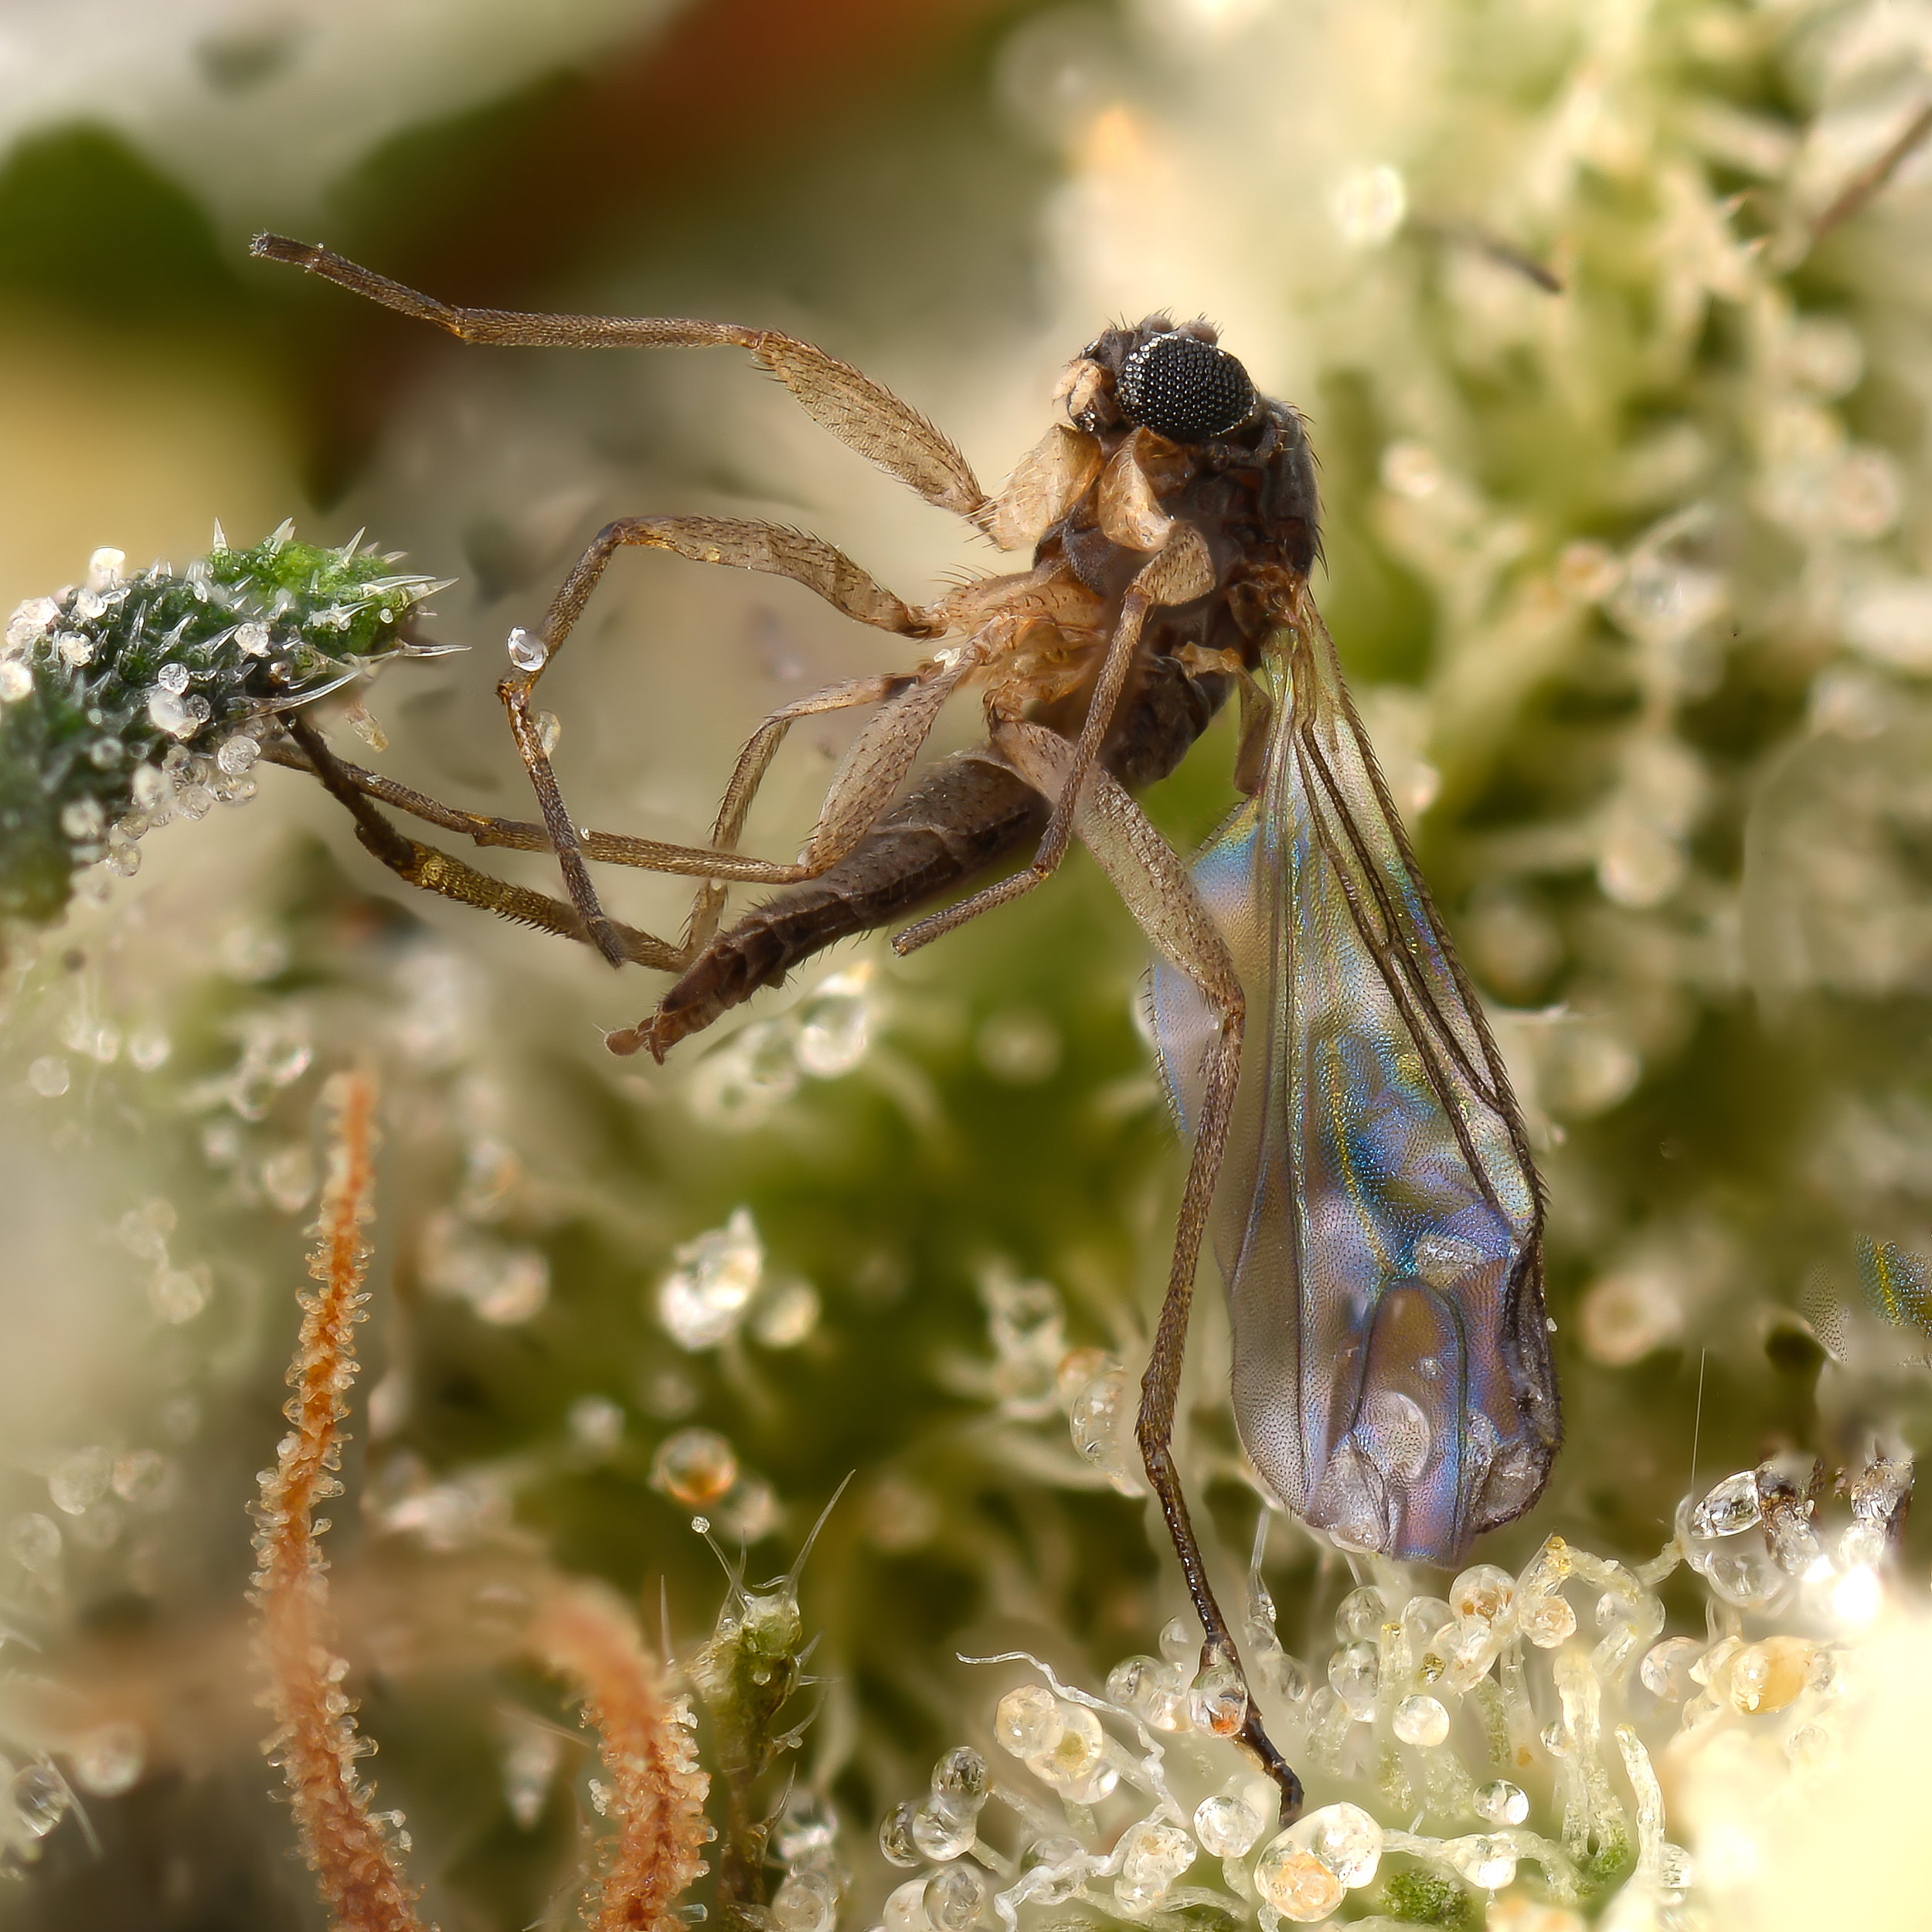 Fungus gnat caught in the trichomes